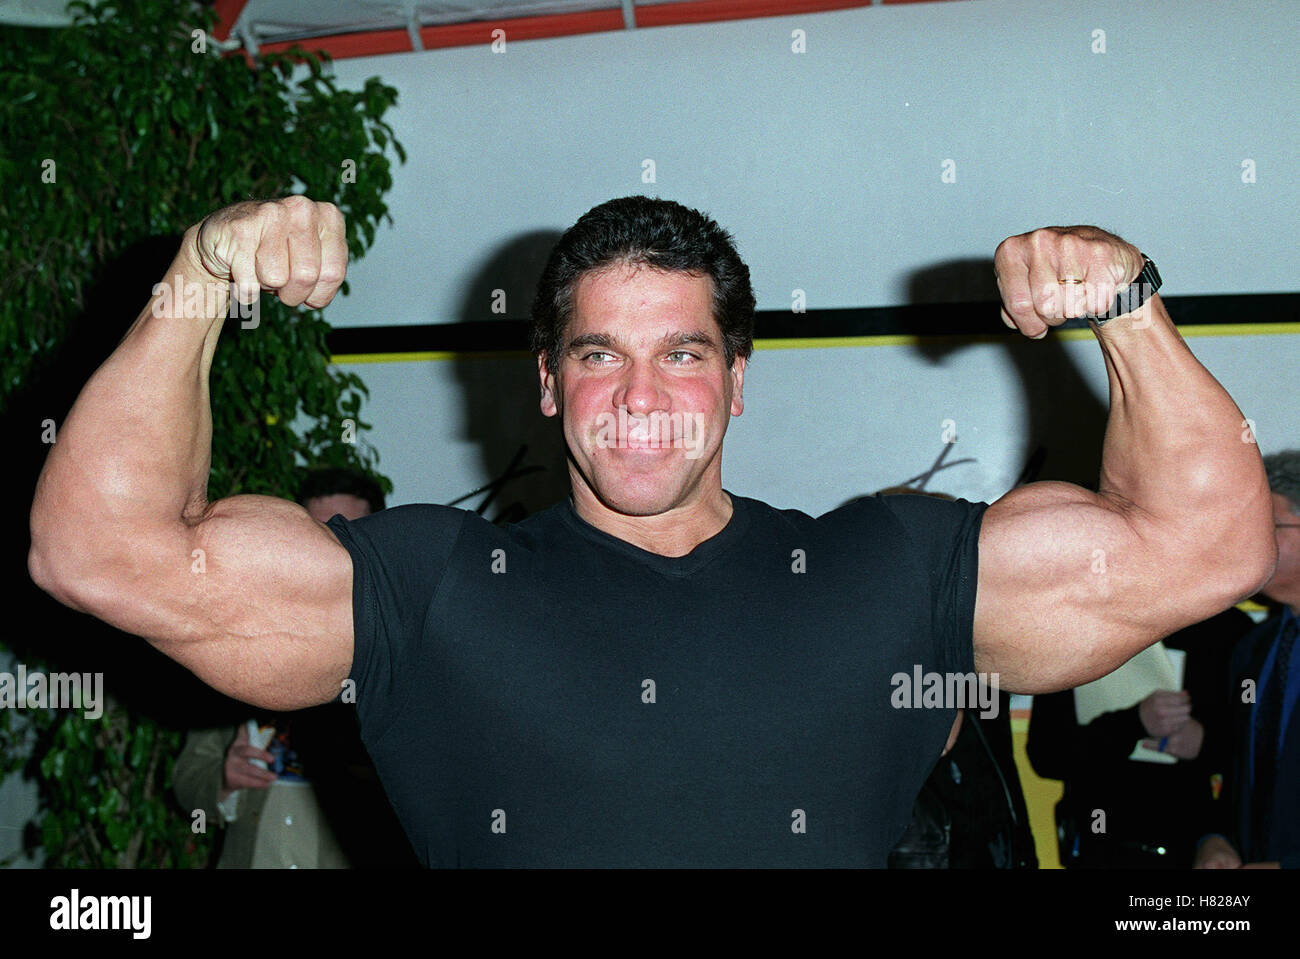 Lou Ferrigno Stock Photos & Lou Ferrigno Stock Images - Alamy